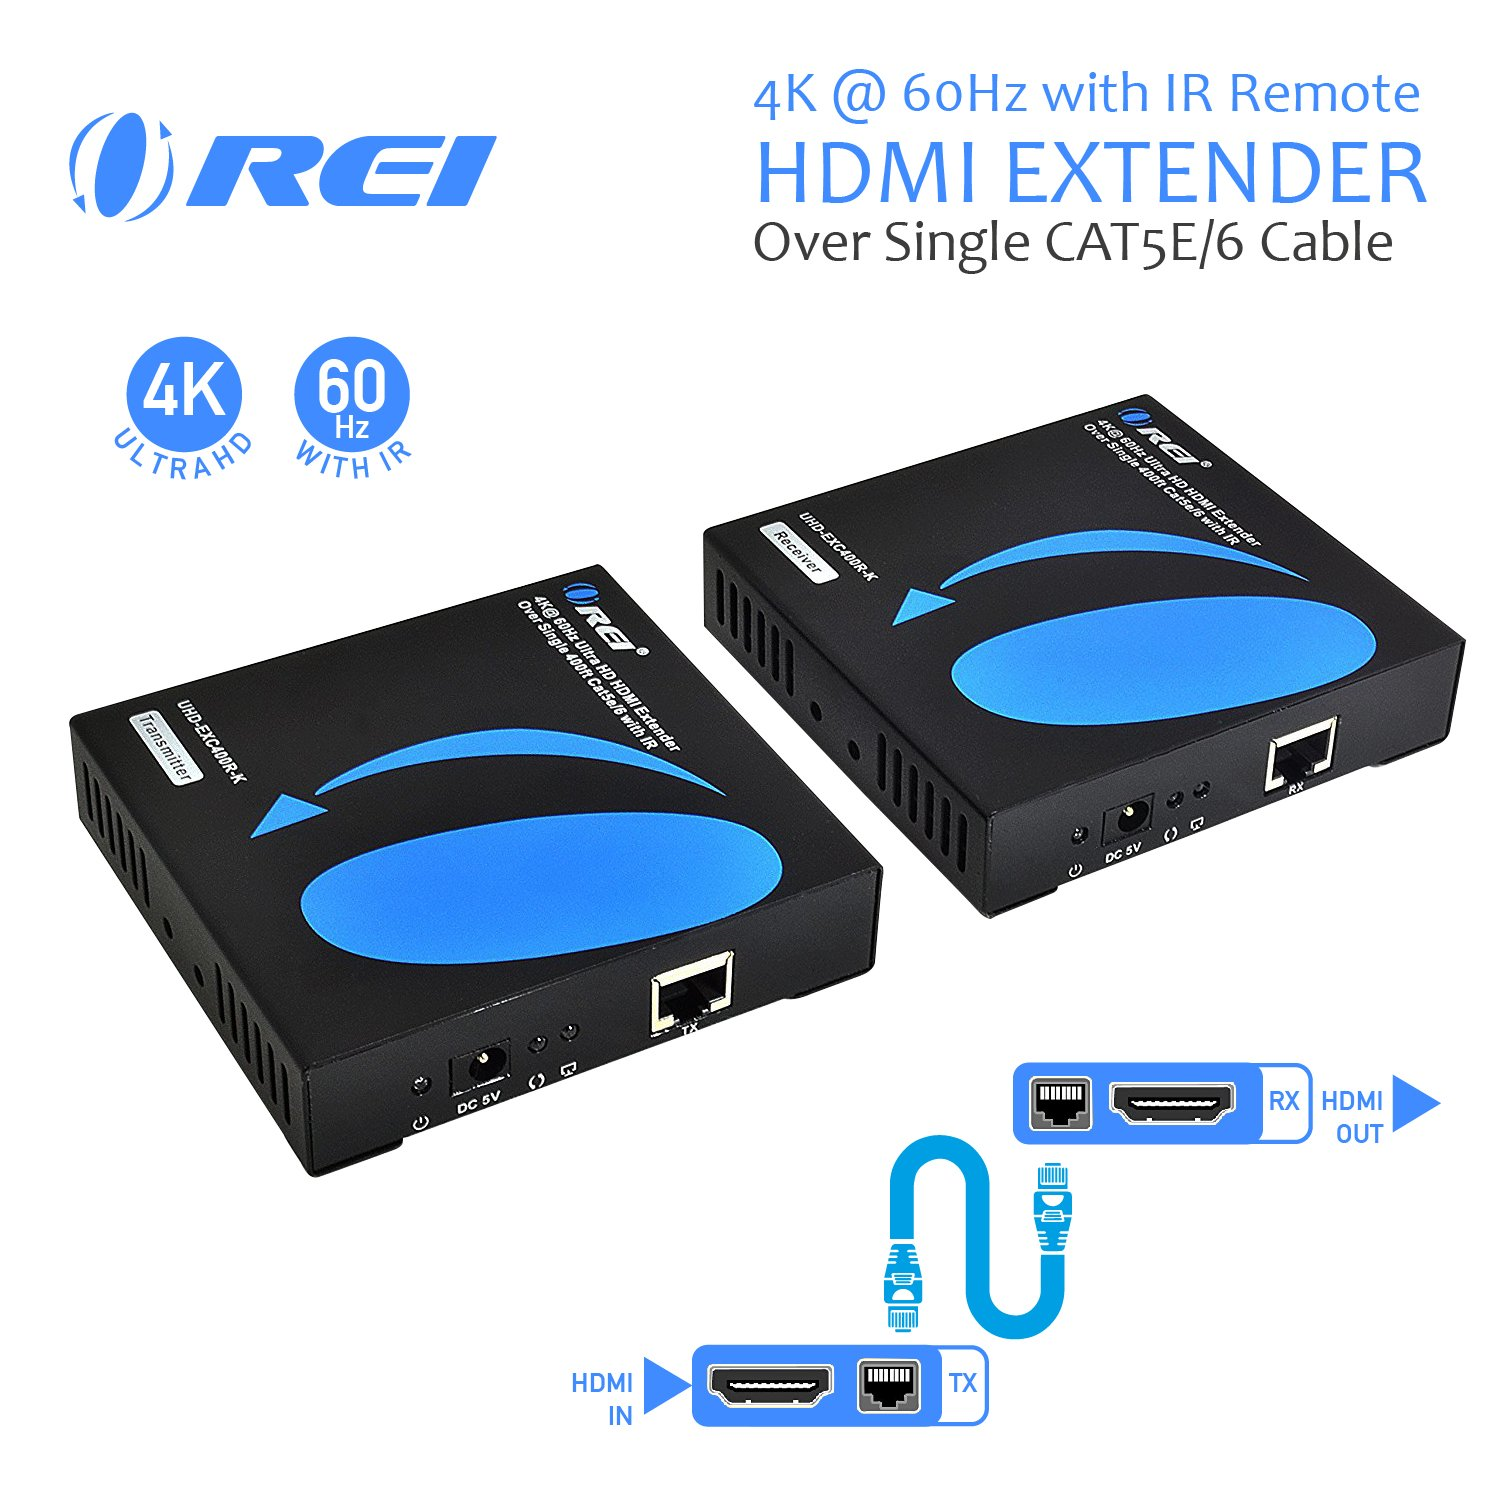 OREI HDMI Extender 4K Over Single CAT5e/CAT6 Cable One to Many Multiple Display Matrix 4K @ 60Hz with IR Remote - Up to 400 Ft